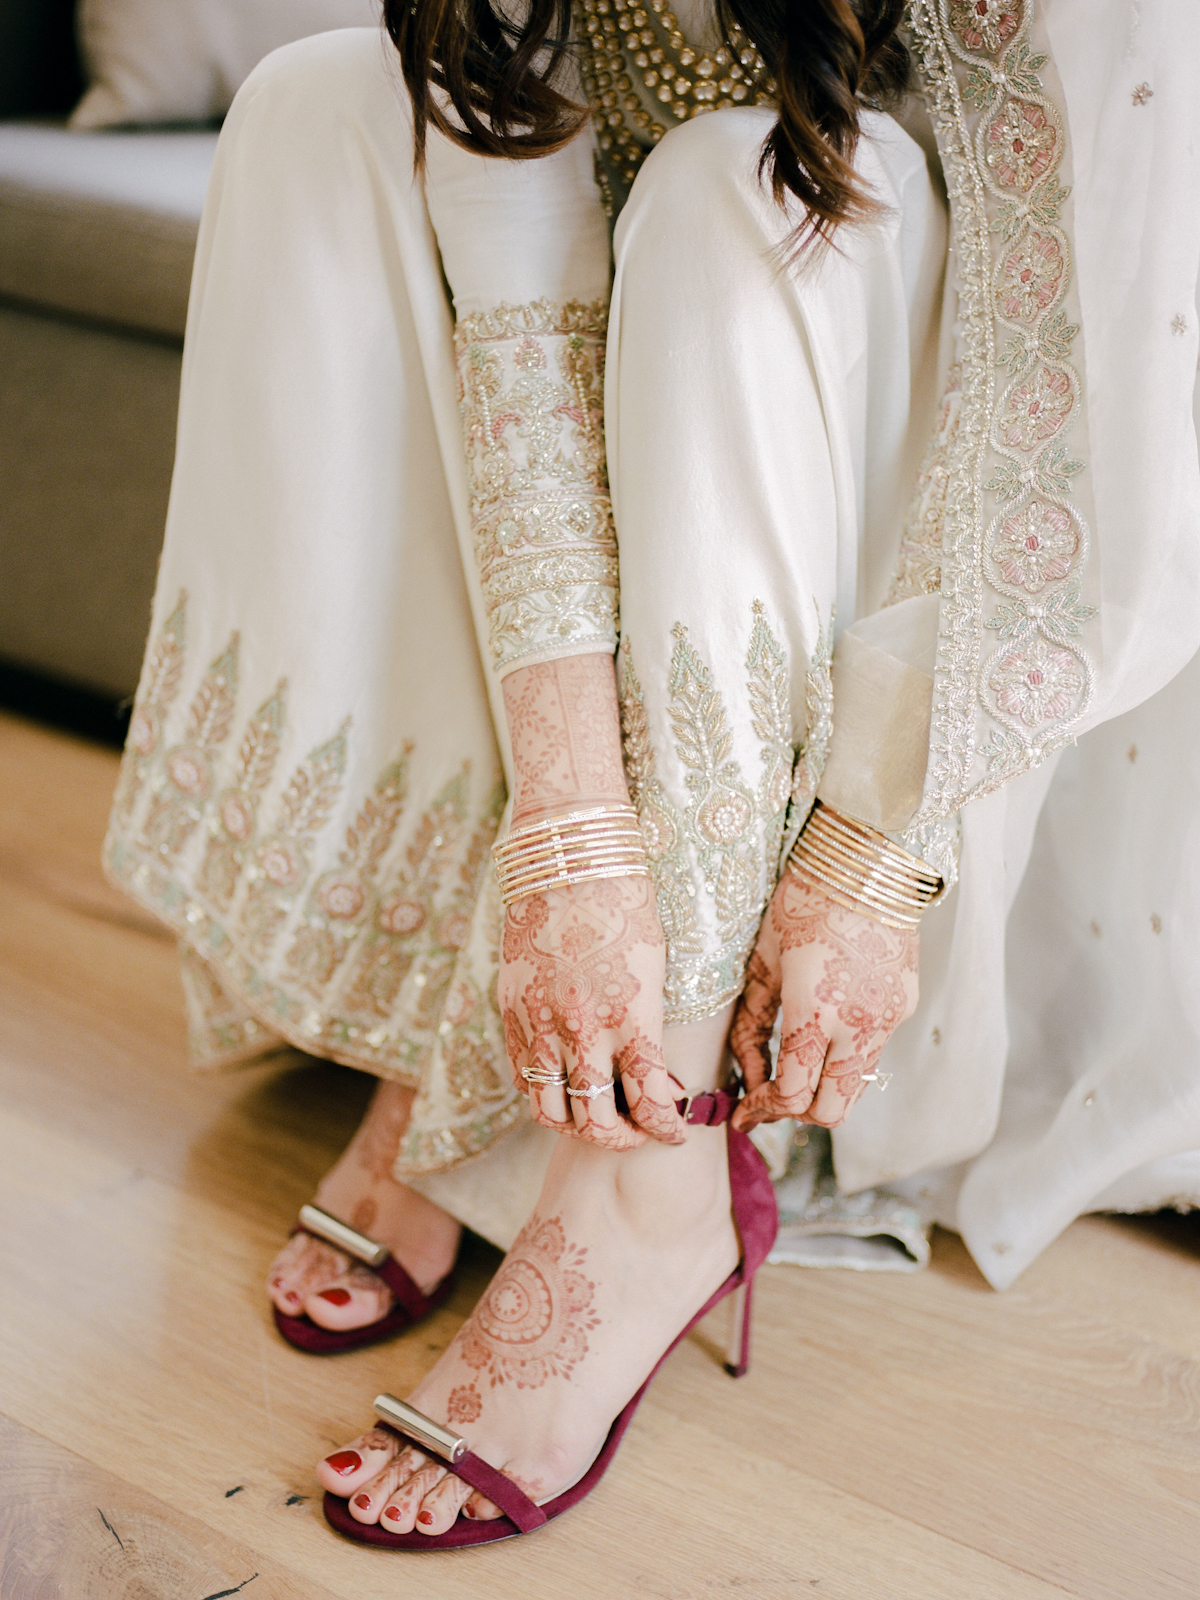 Rainbow Room Wedding, planner Ang Weddings and Events, photography Heather Waraksa, florals Poppies and Posies, wedding shoes, south asian wedding